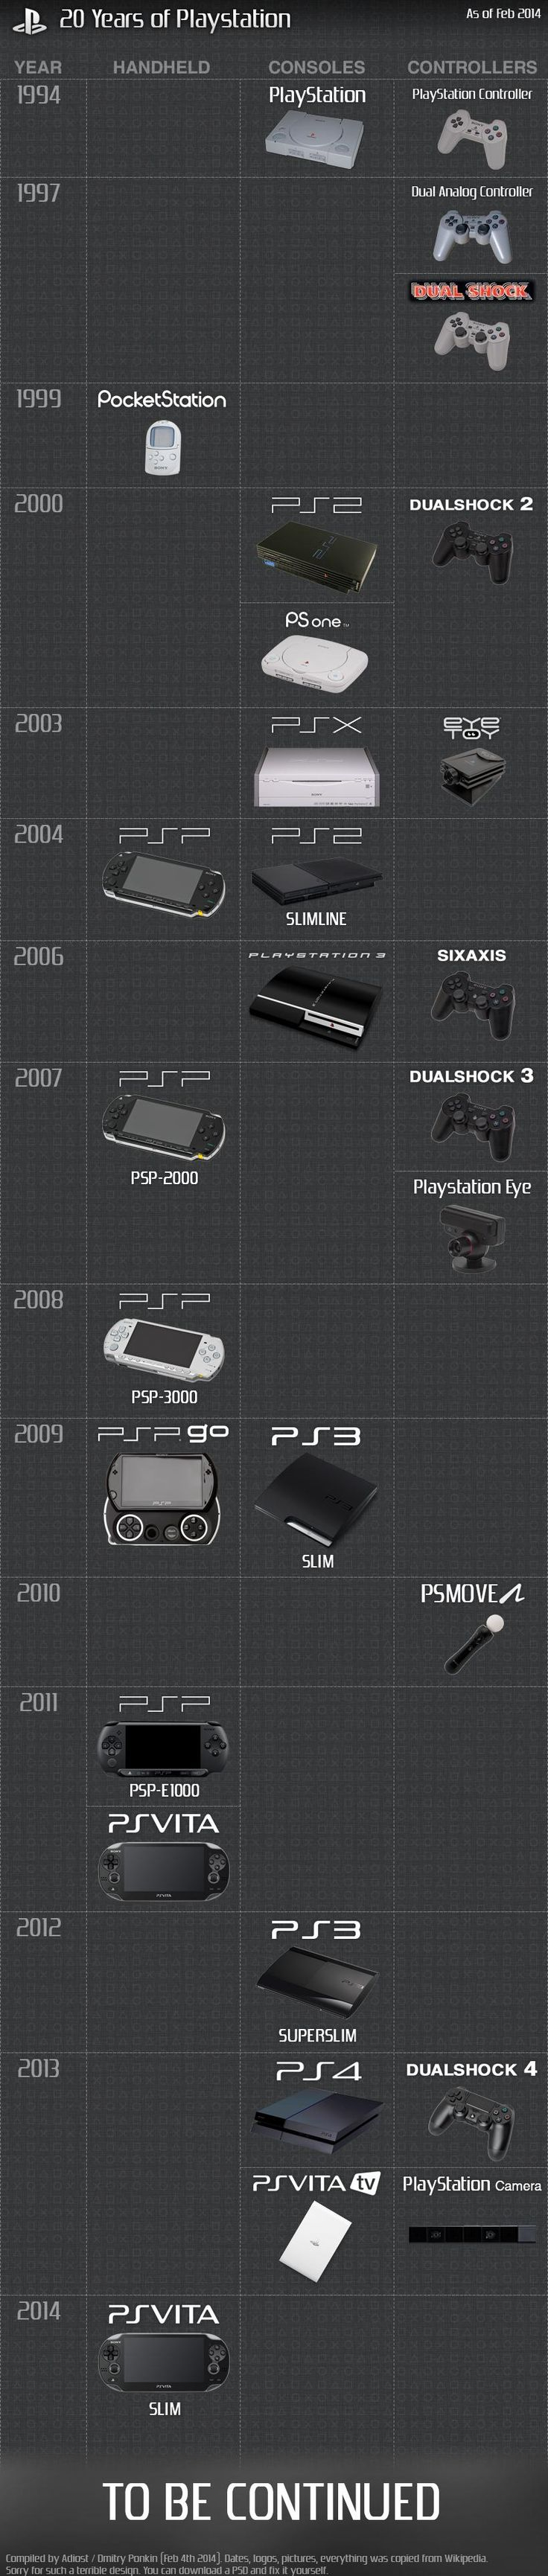 Twenty years of PlayStation in one chart